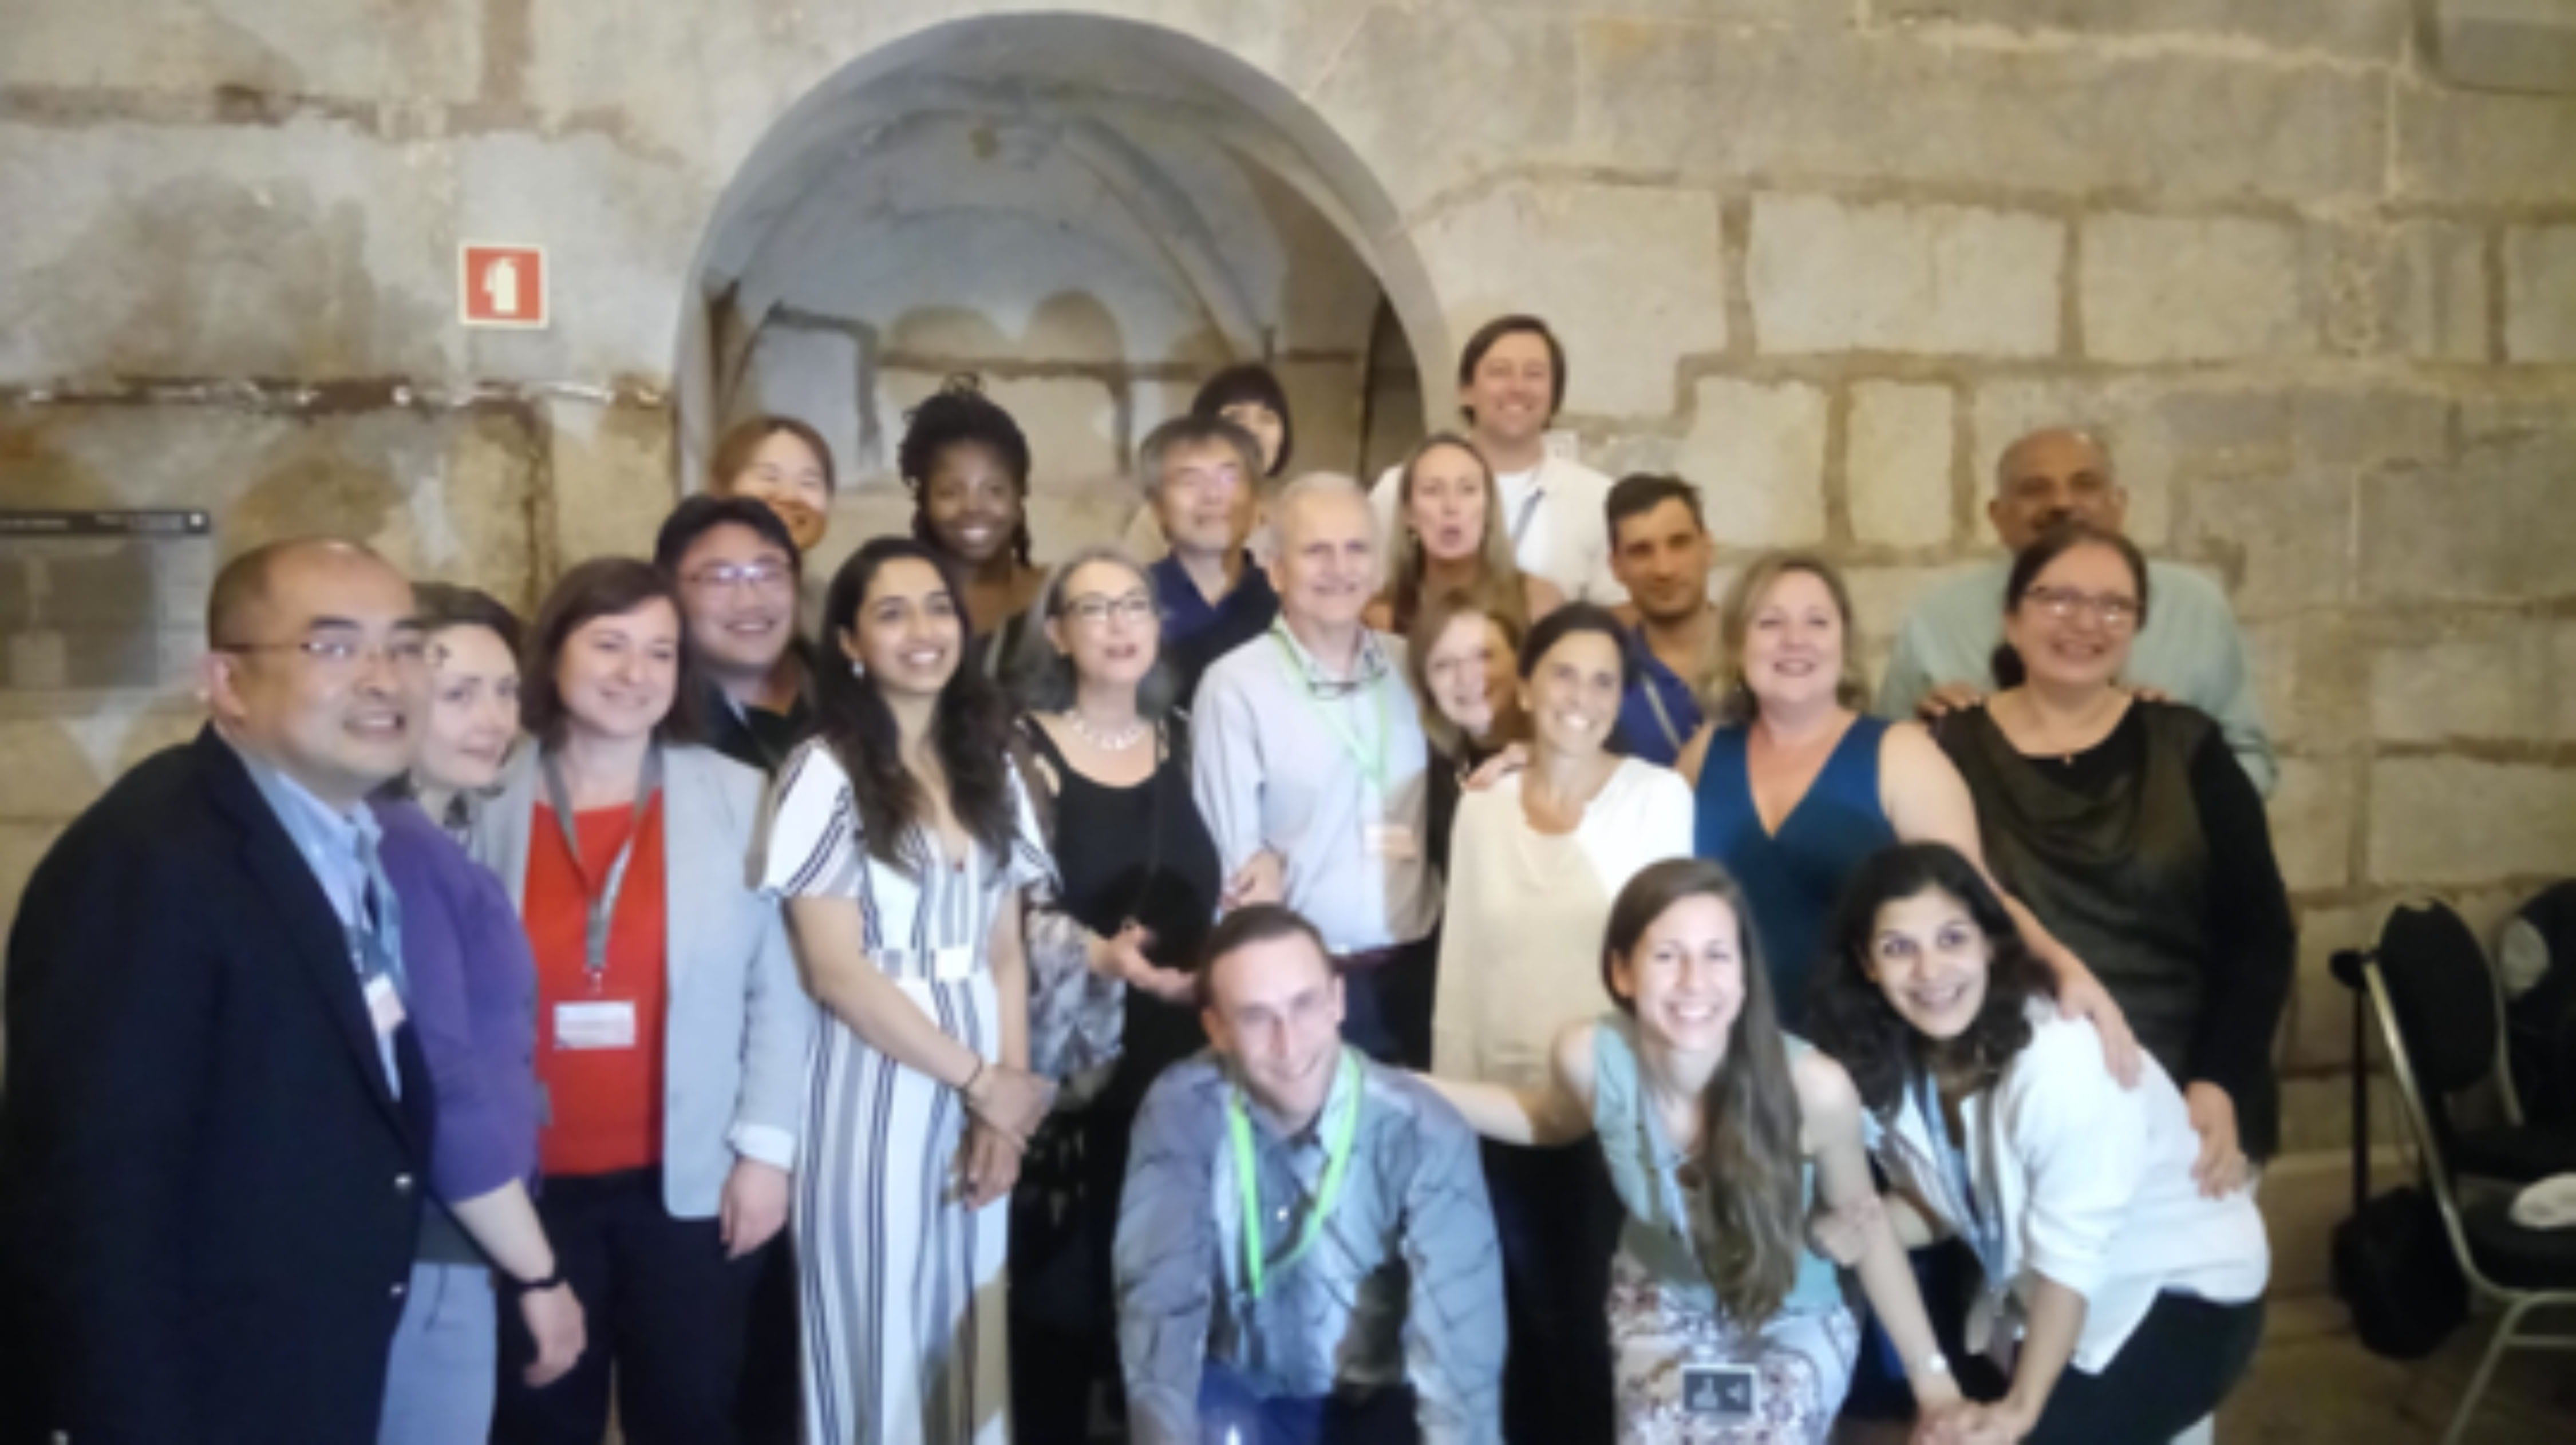 Group picture at 13th Sphingolipid Club & 10th International Ceramide Conference in Cascais, Portugal, May 6-10 2019